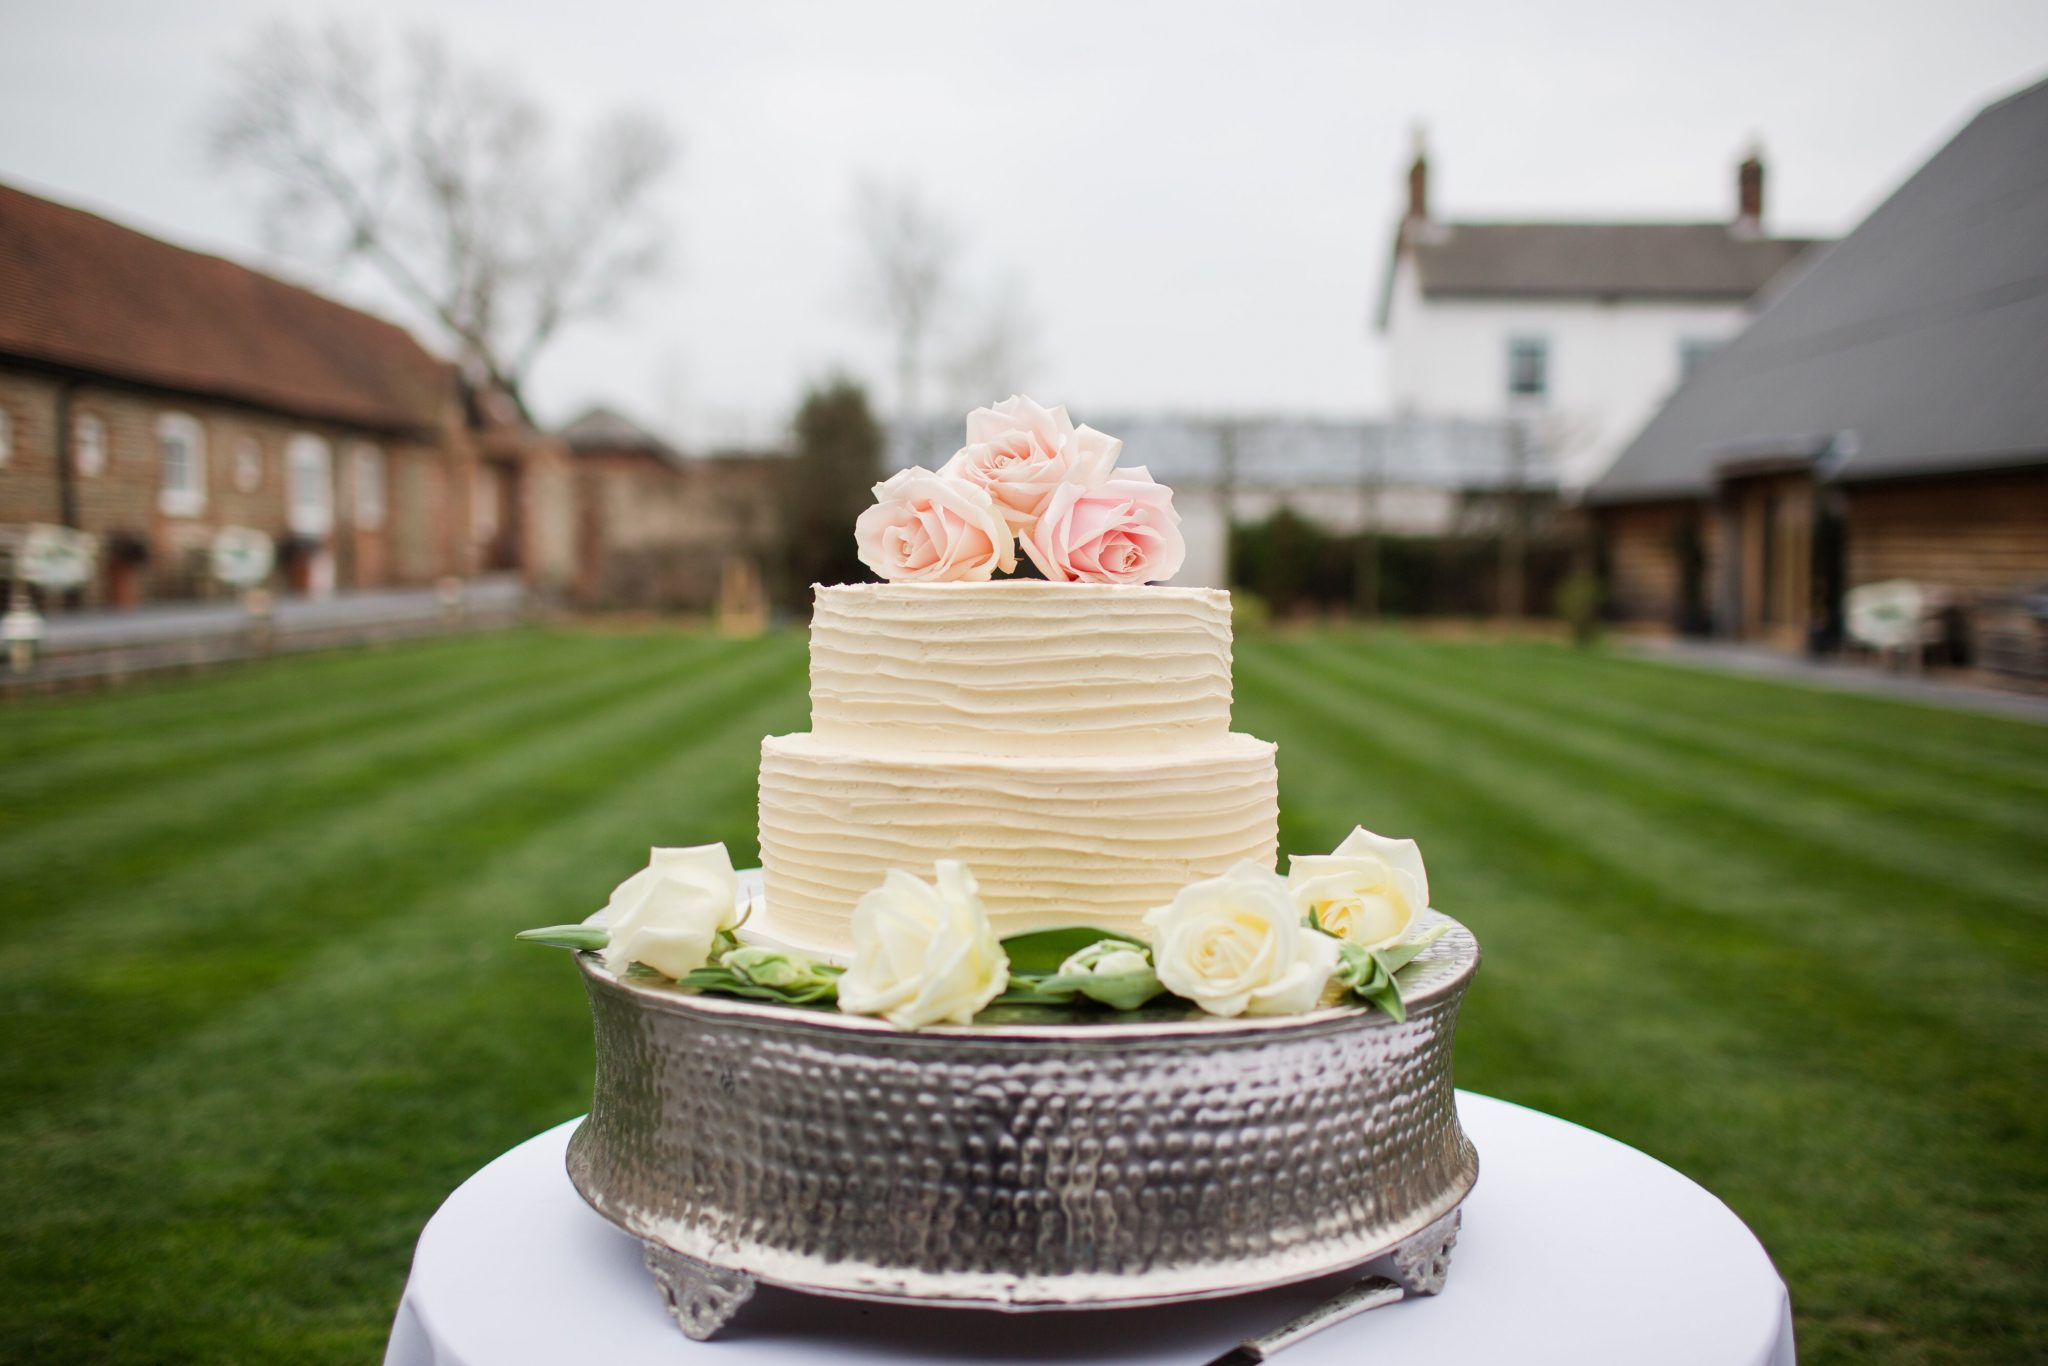 Nic's Slice of Heaven two tier buttercream wedding cake with pale roses, Southend Barns, Sussex